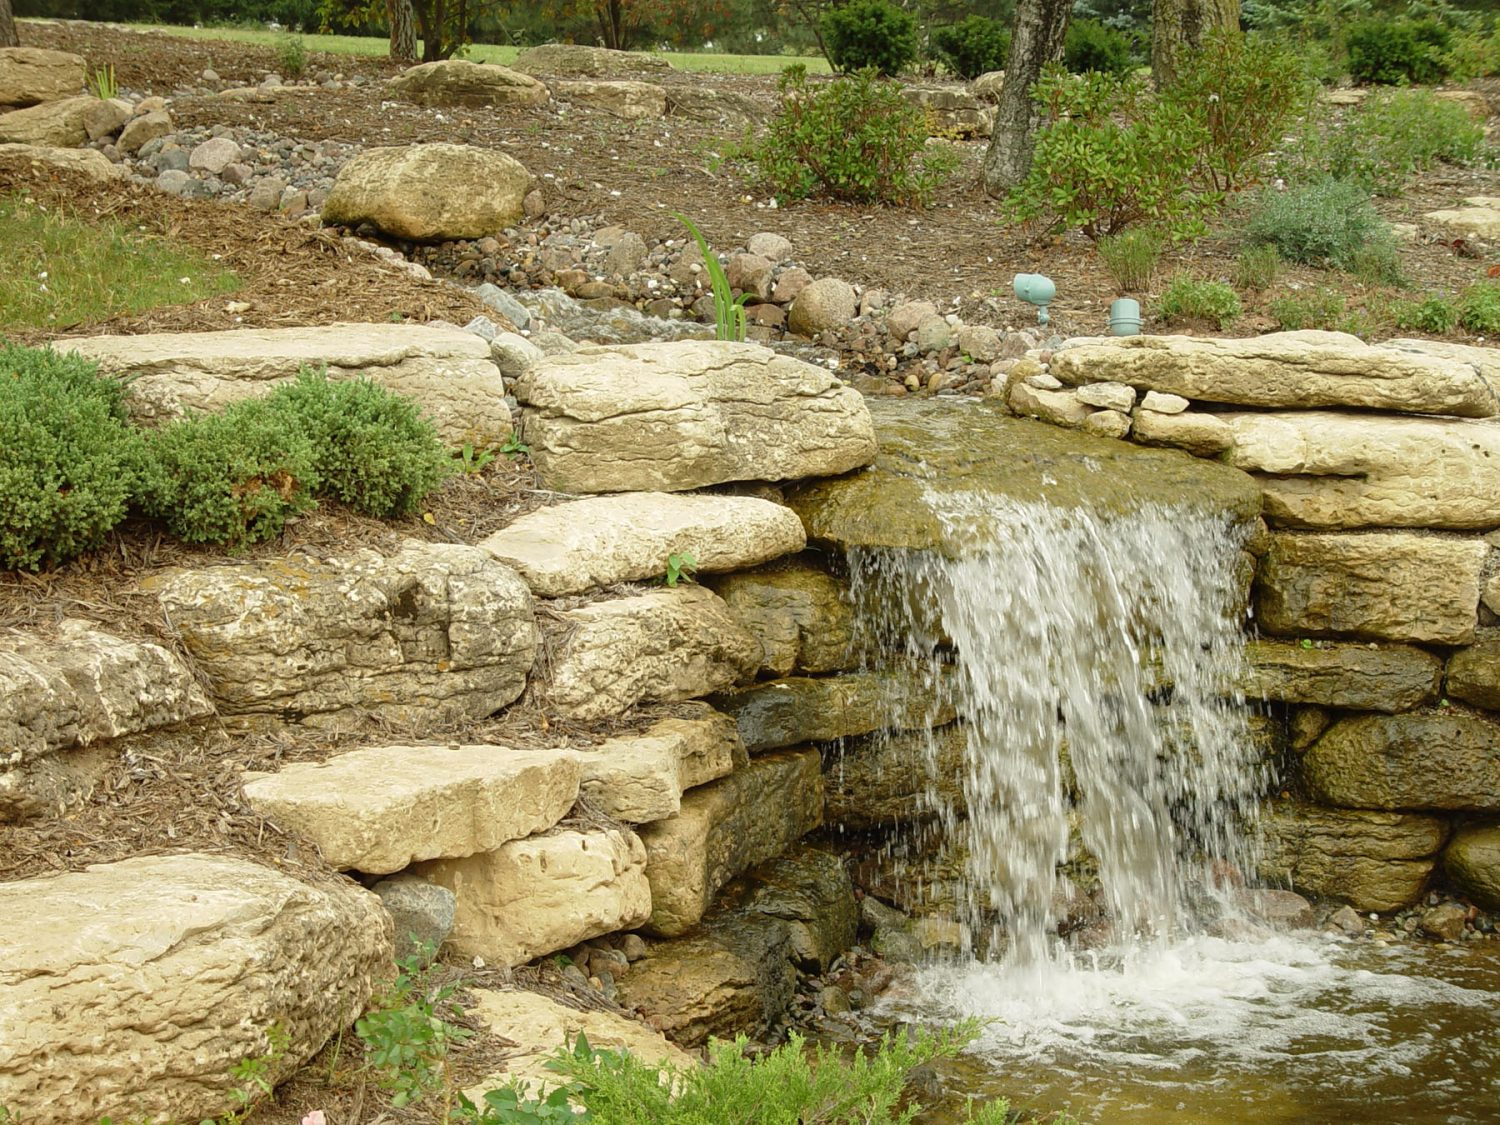 Stream, Waterfall, and Pond in a Client's Landscaping in Green Bay